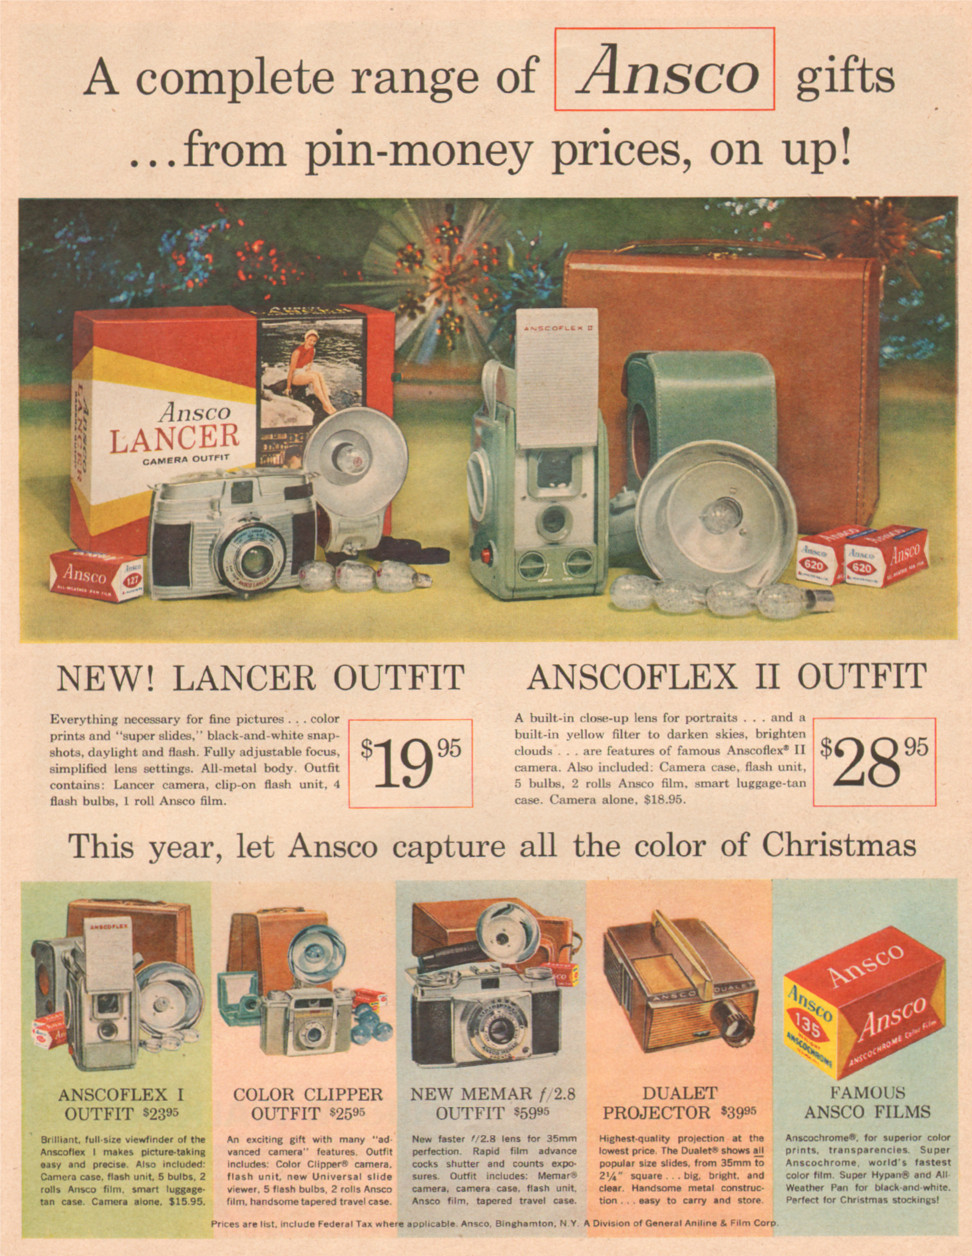 ANSCO FILM AND CAMERAS LIFE 12/08/1958 p. 69